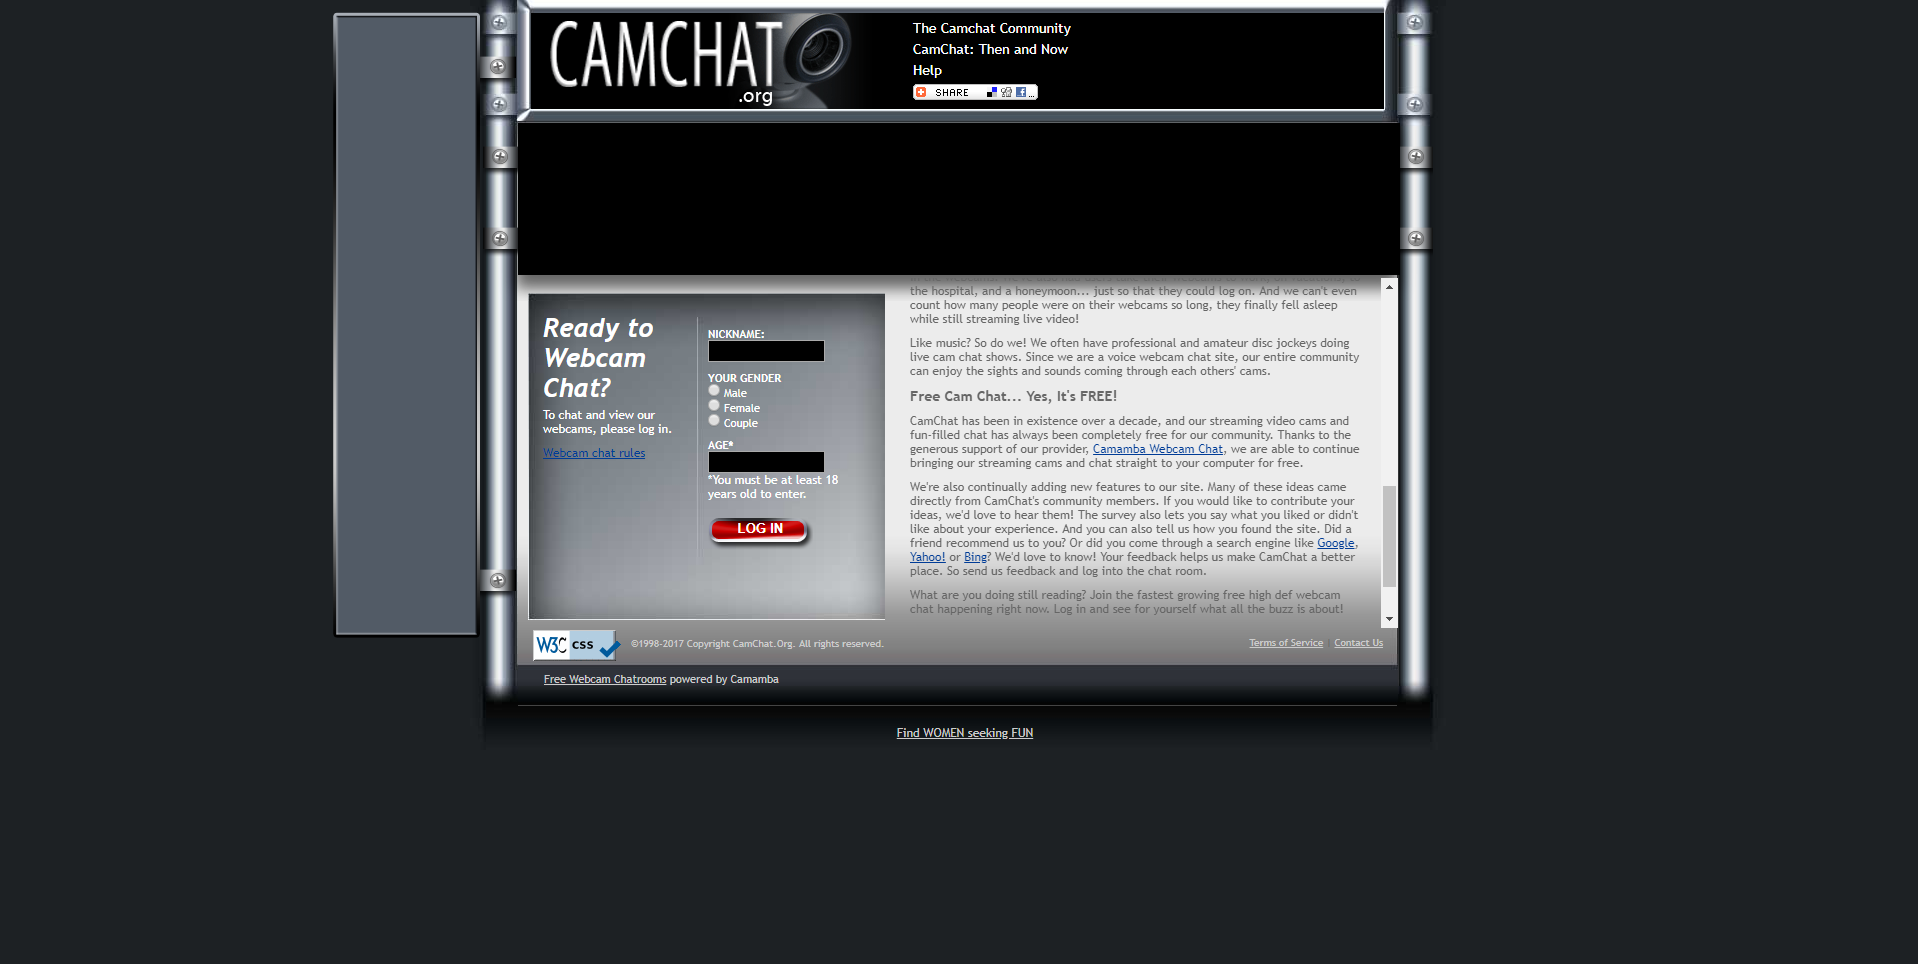 Chat alternativen cam Sites Like